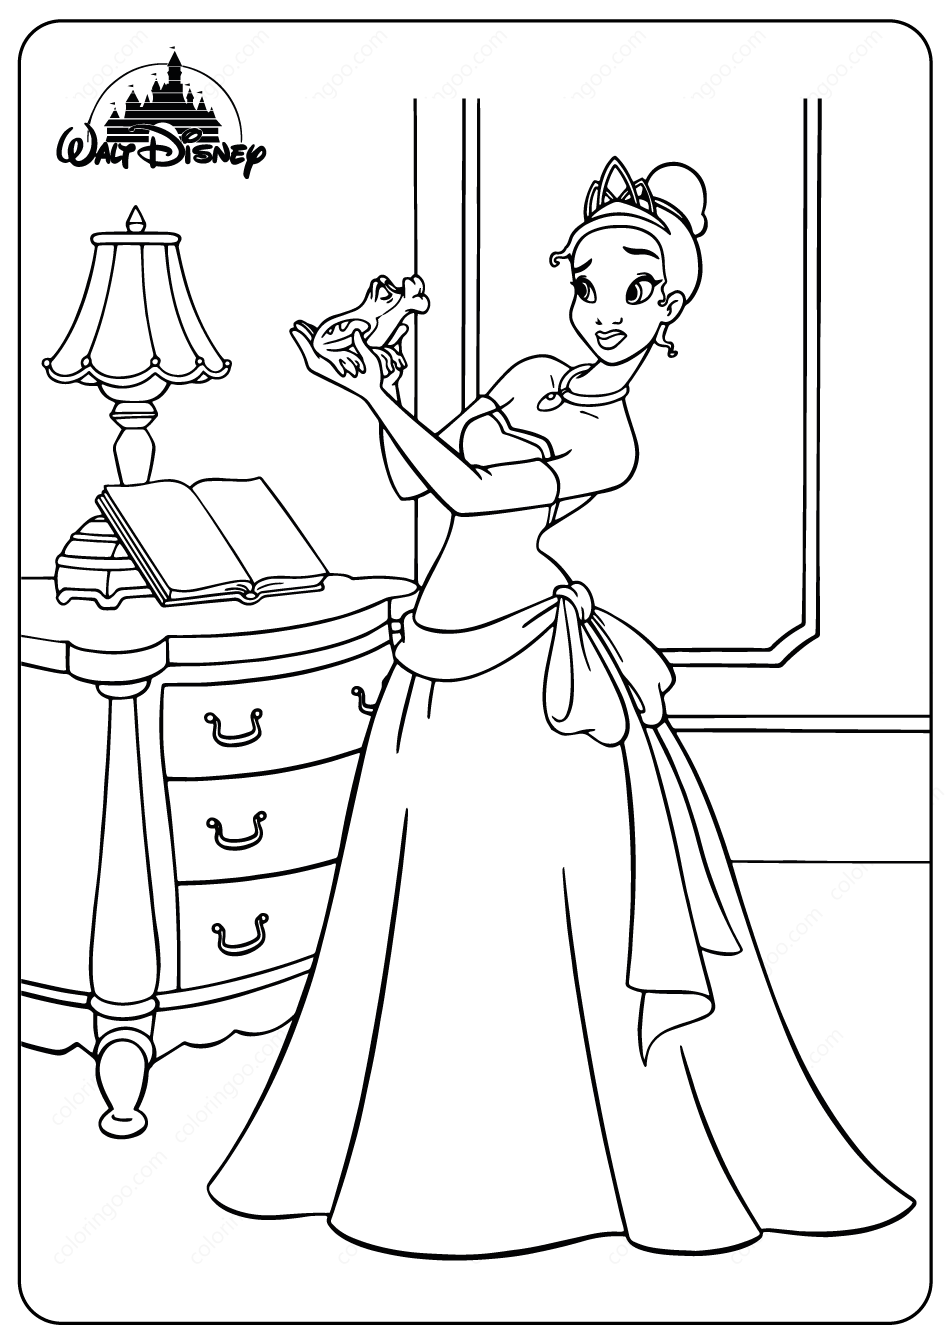 Printable Tiana and the Frog Coloring Pages in 2020